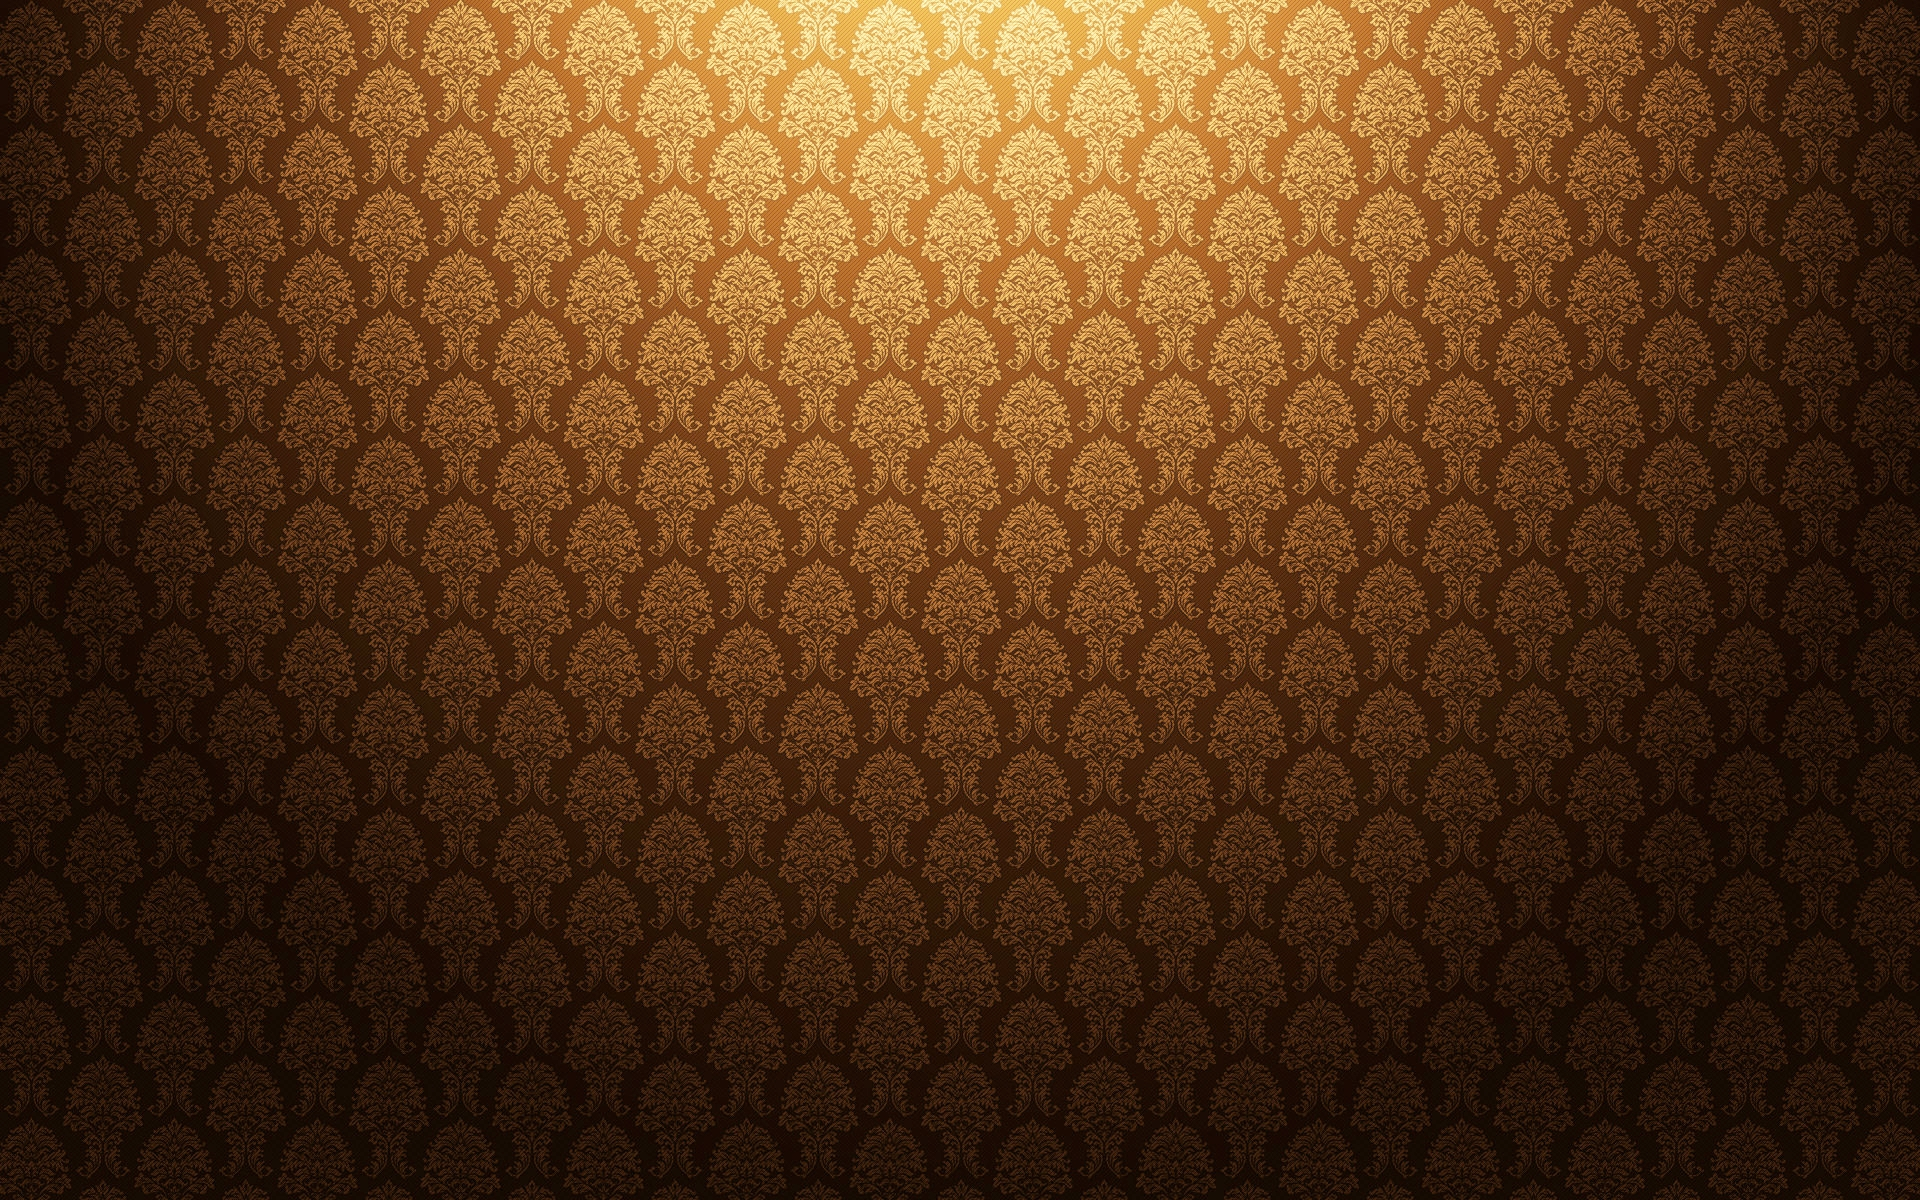 40+ Vintage Background - PSD, Vector EPS, JPG Download